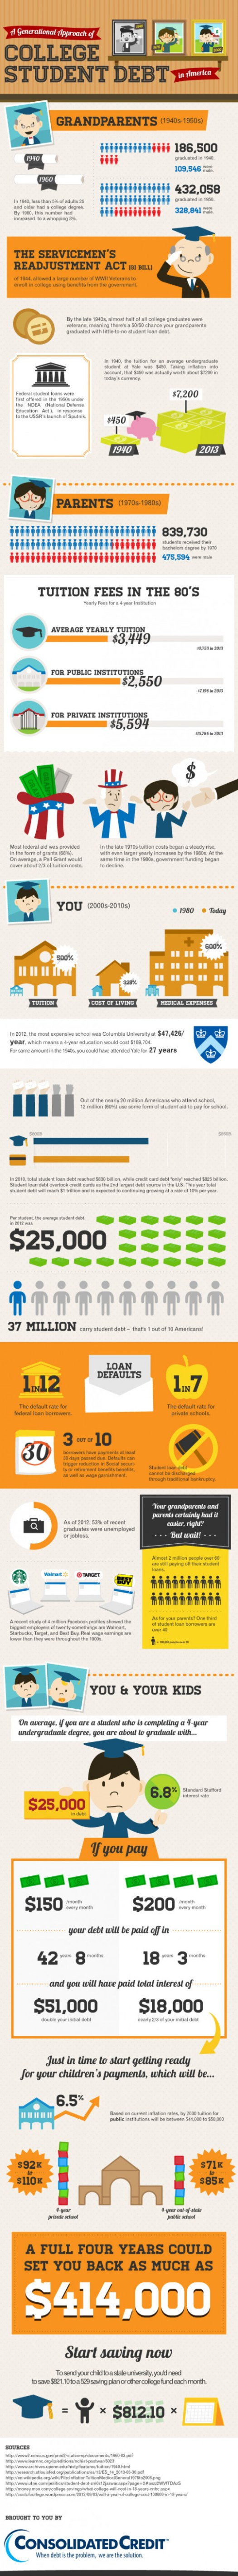 A Generational Approach of College Student Debt